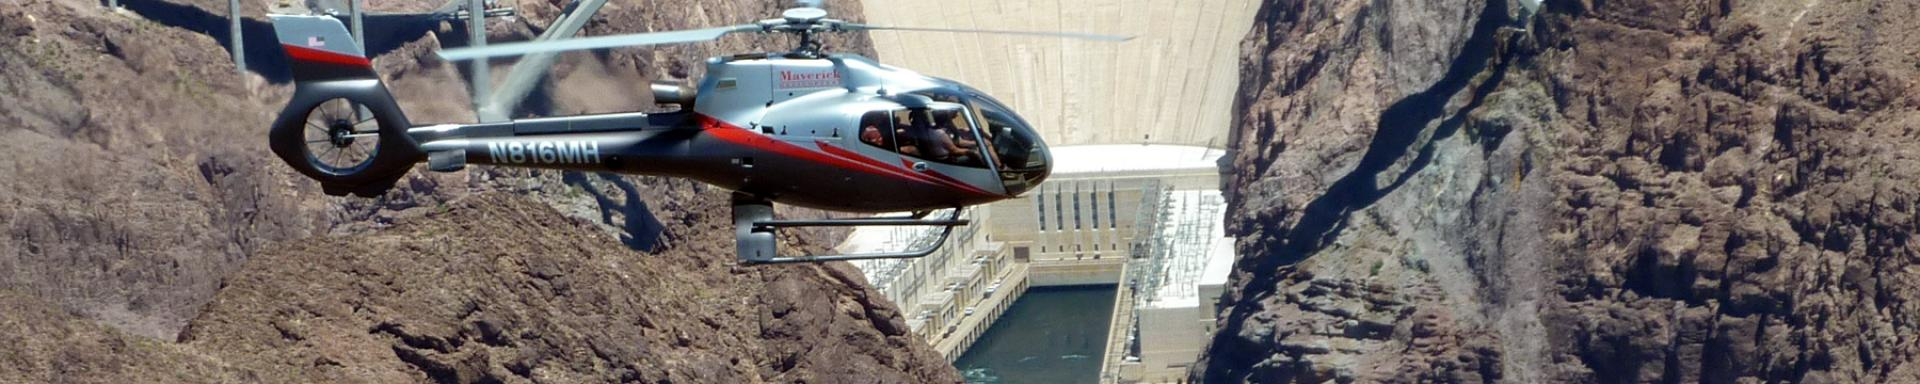 Save over £90 per person on Wind Dancer Helicopter Flights!